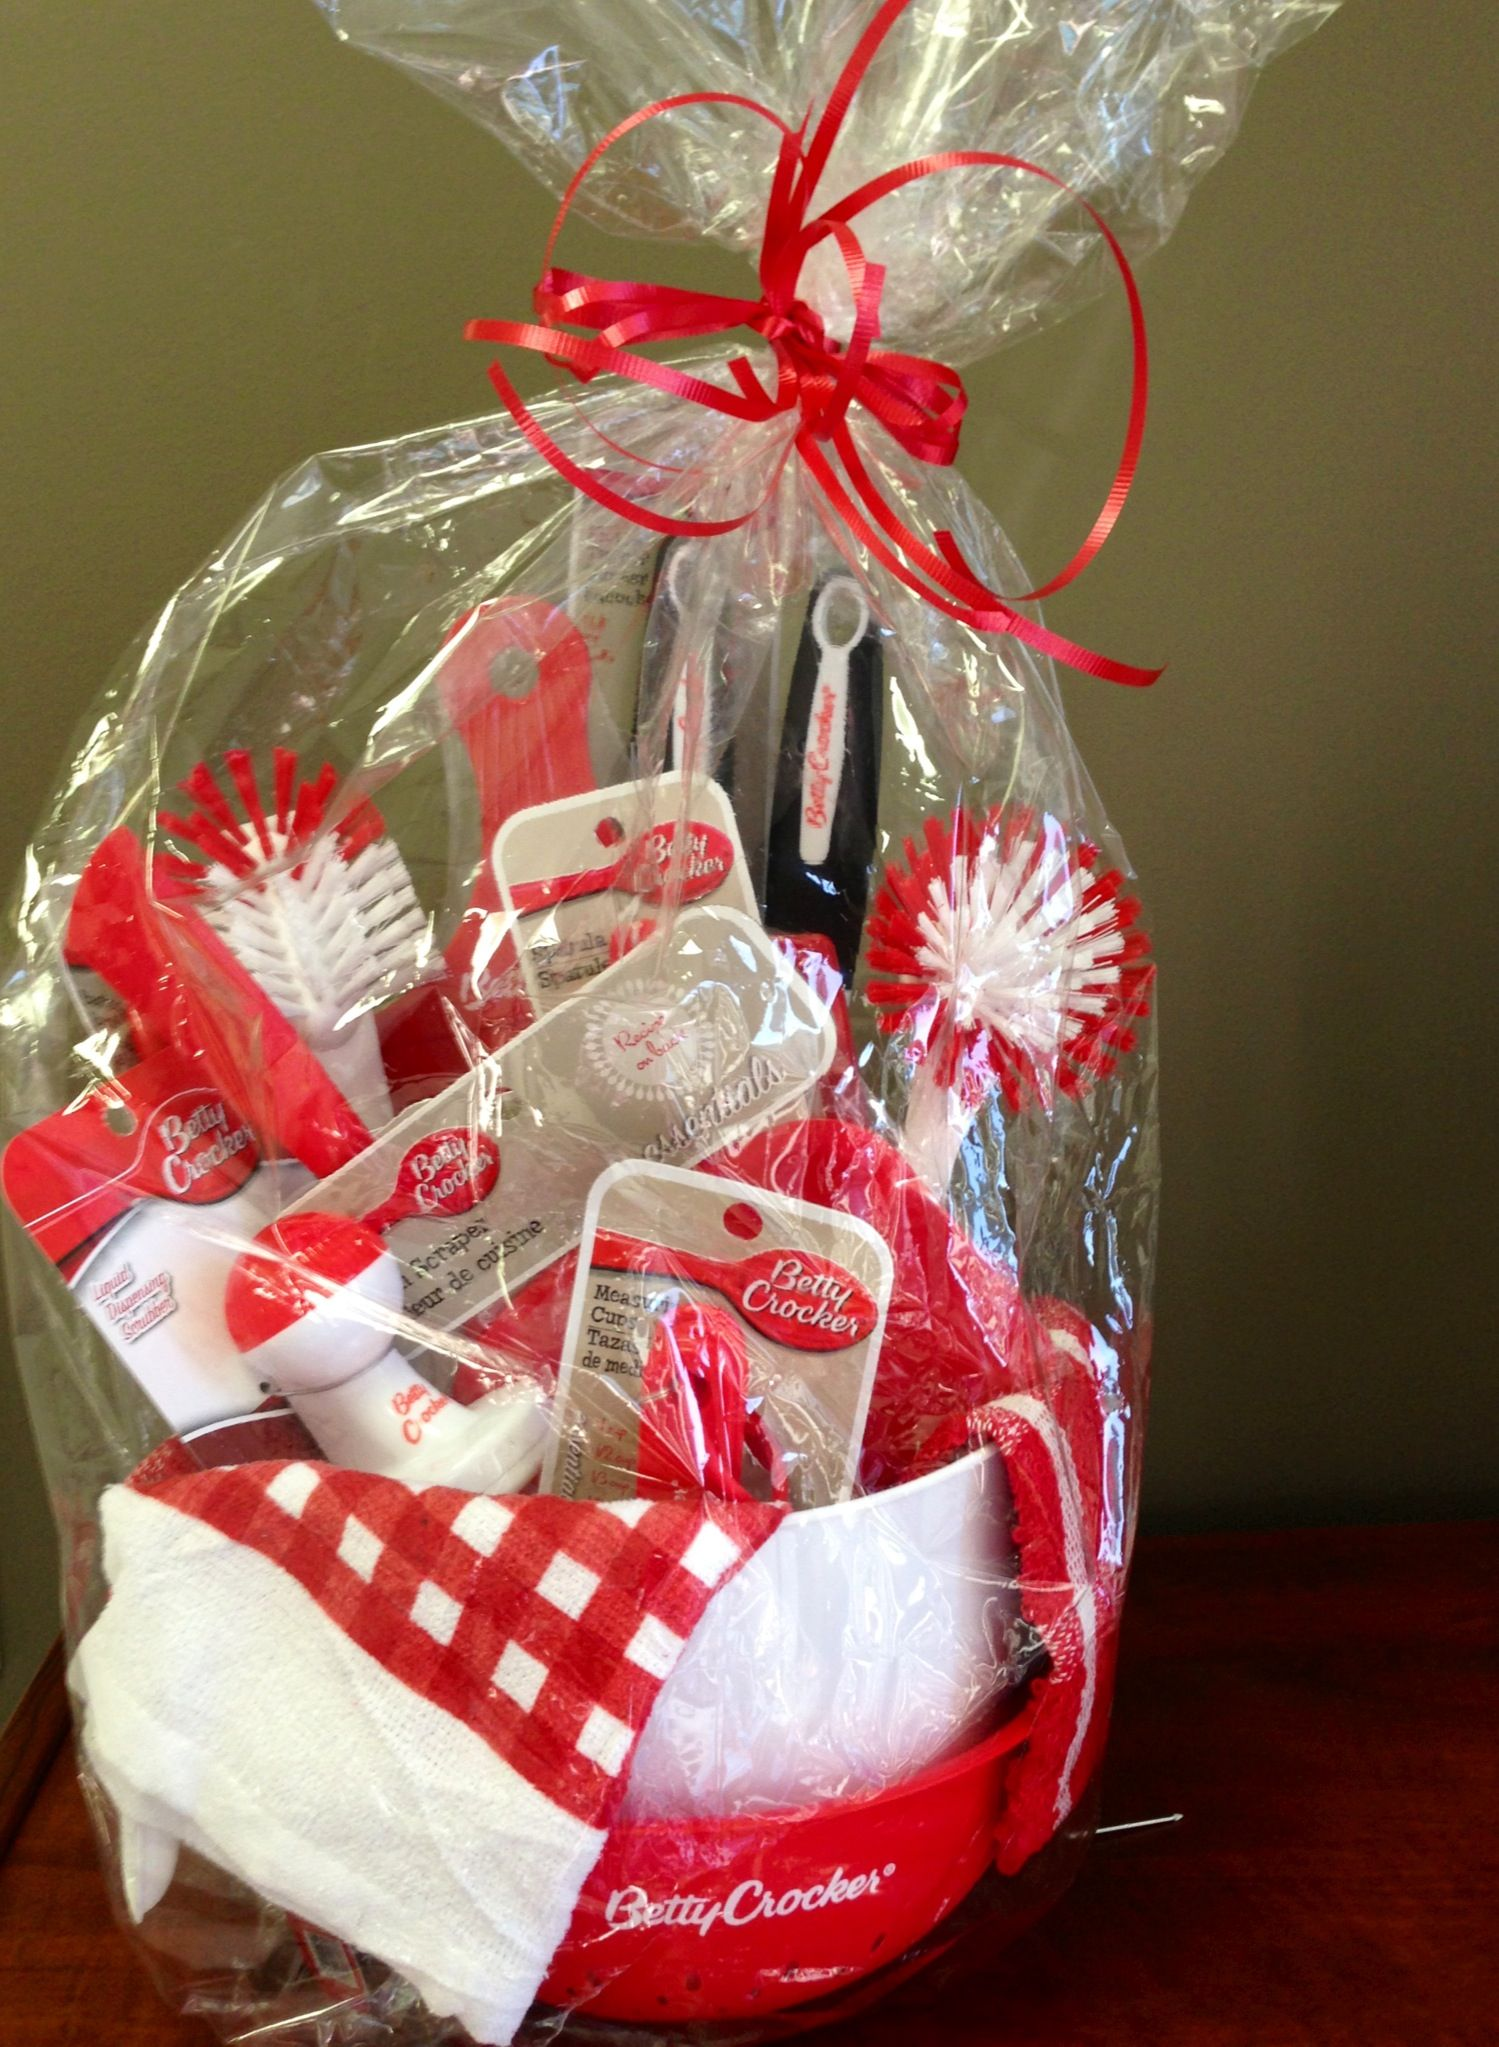 Kitchen Gift Basket From The Dollar Tree Basket Ideas Kitchen Gift Baskets Gifts Diy Gift Baskets